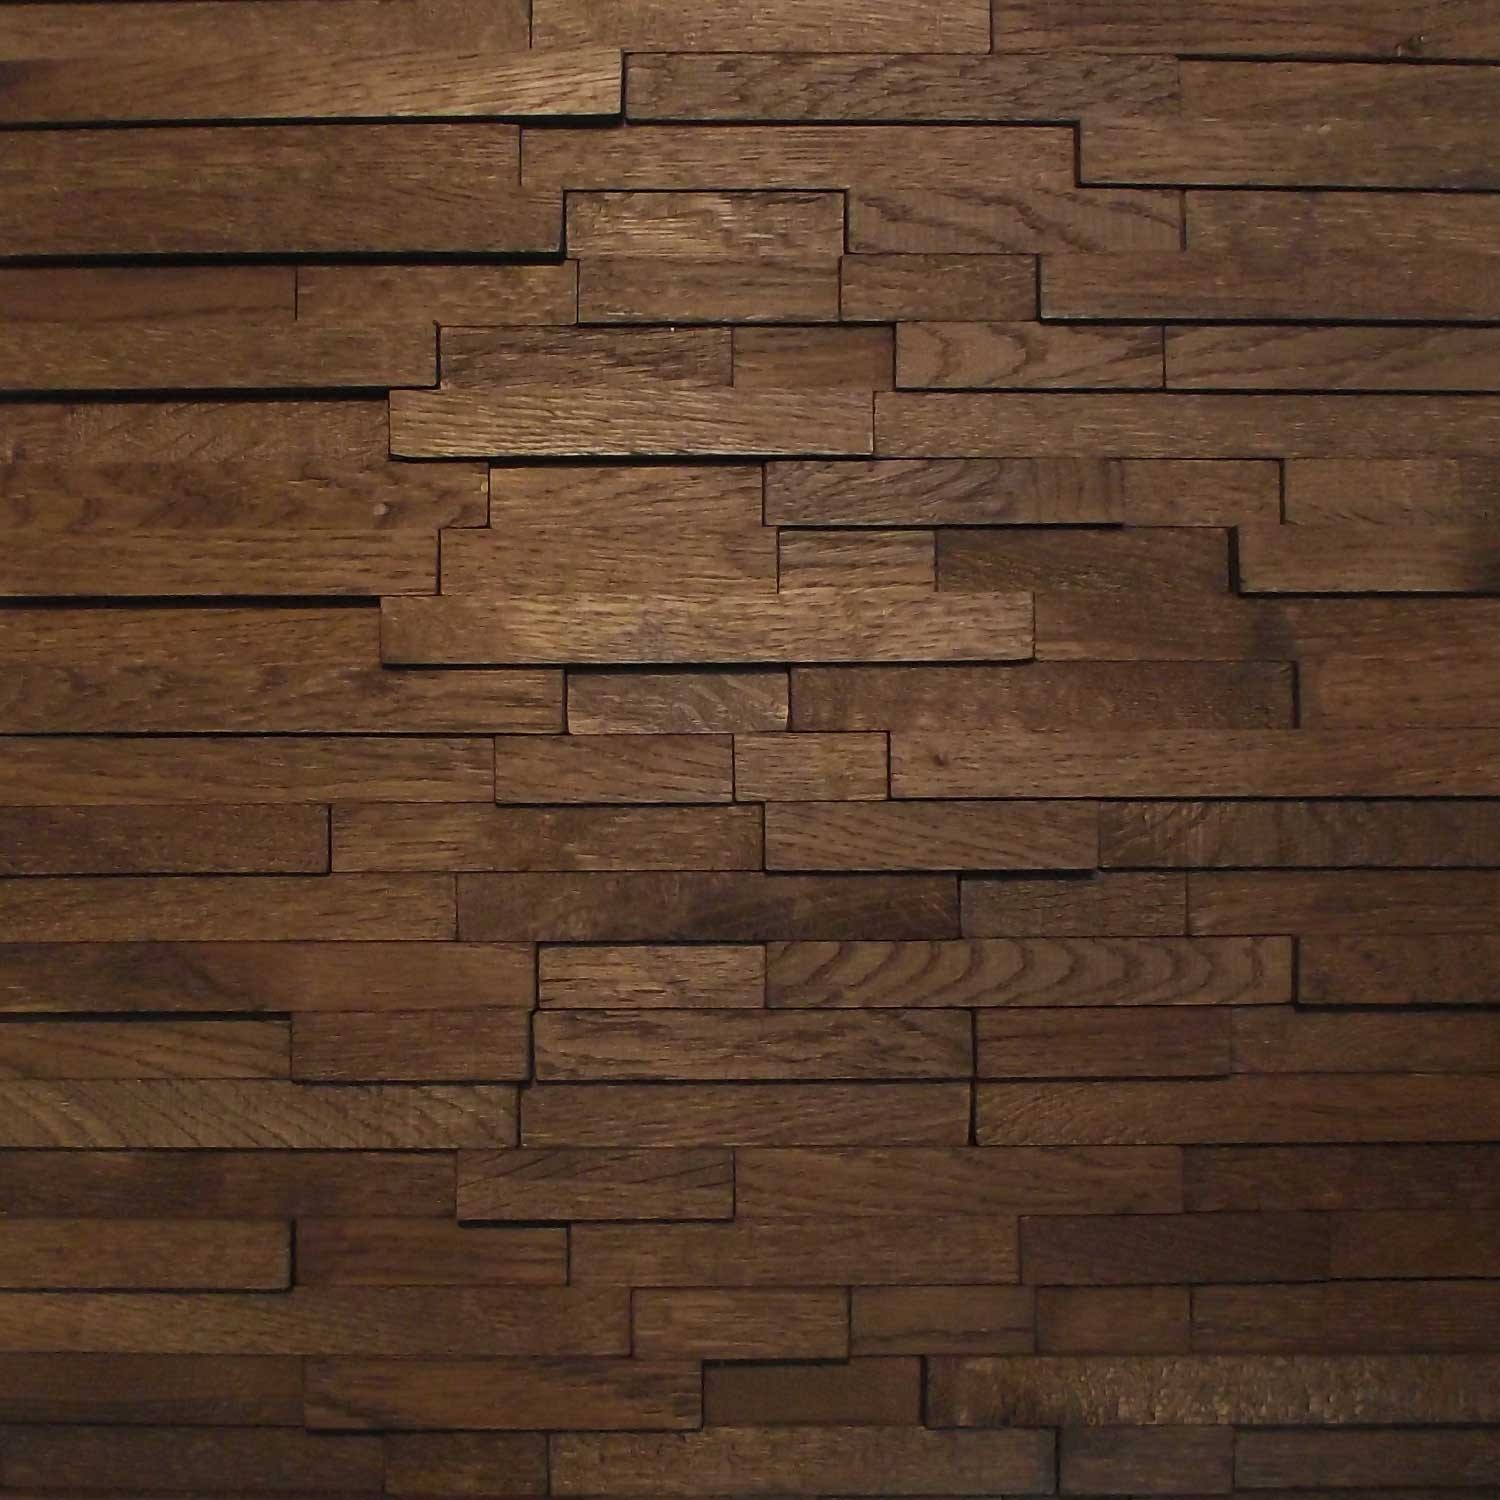 Wood Wall Design Benefits Of Wood Wall Panel Design  Interior & Exterior Doors